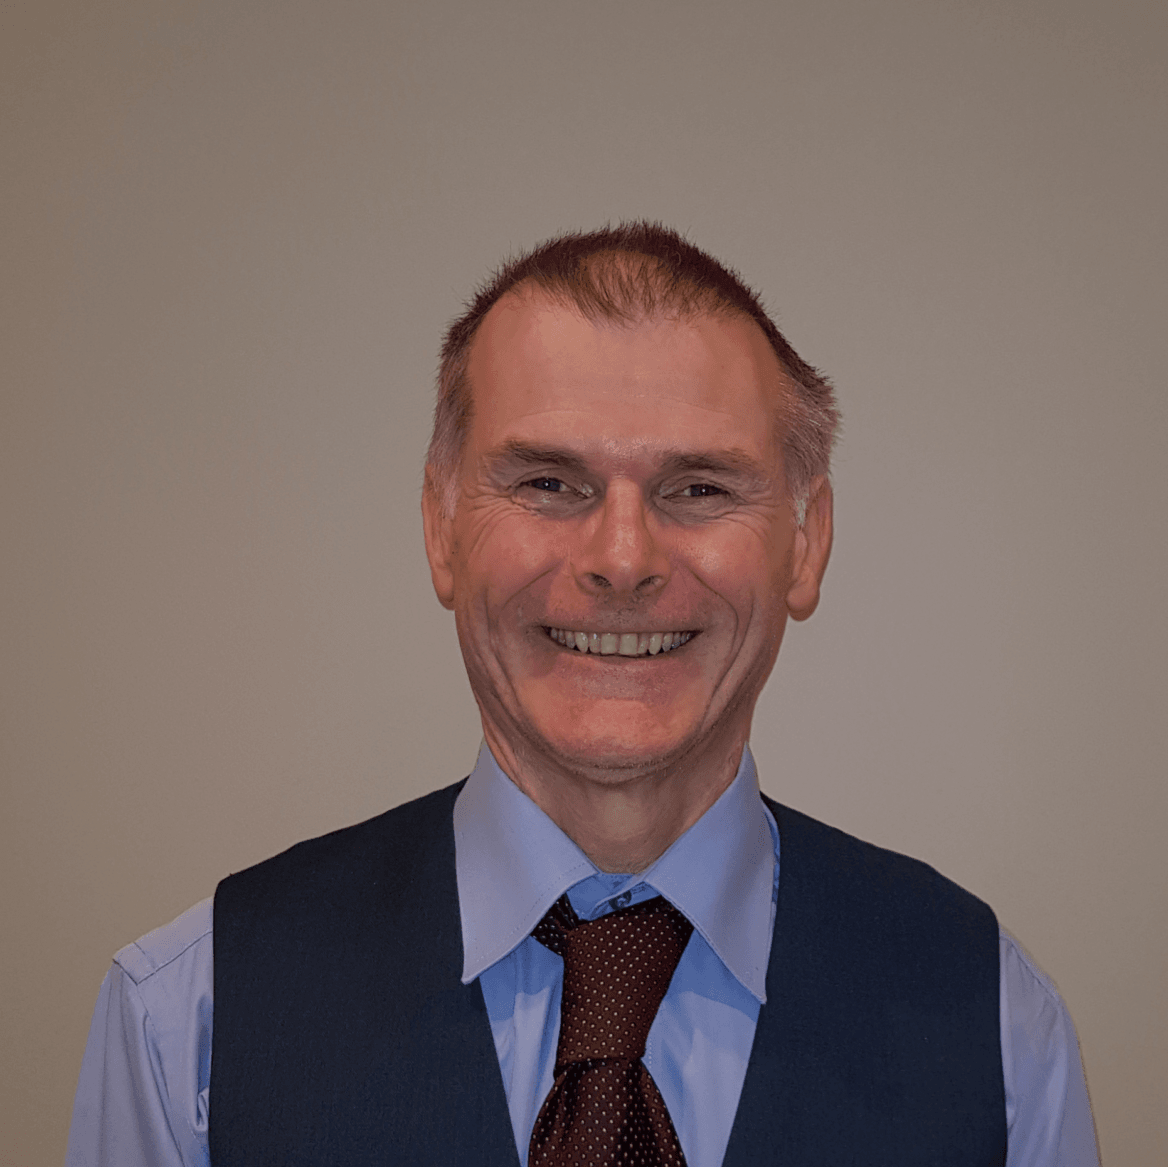 Harry Smith at Nicolson Accountancy